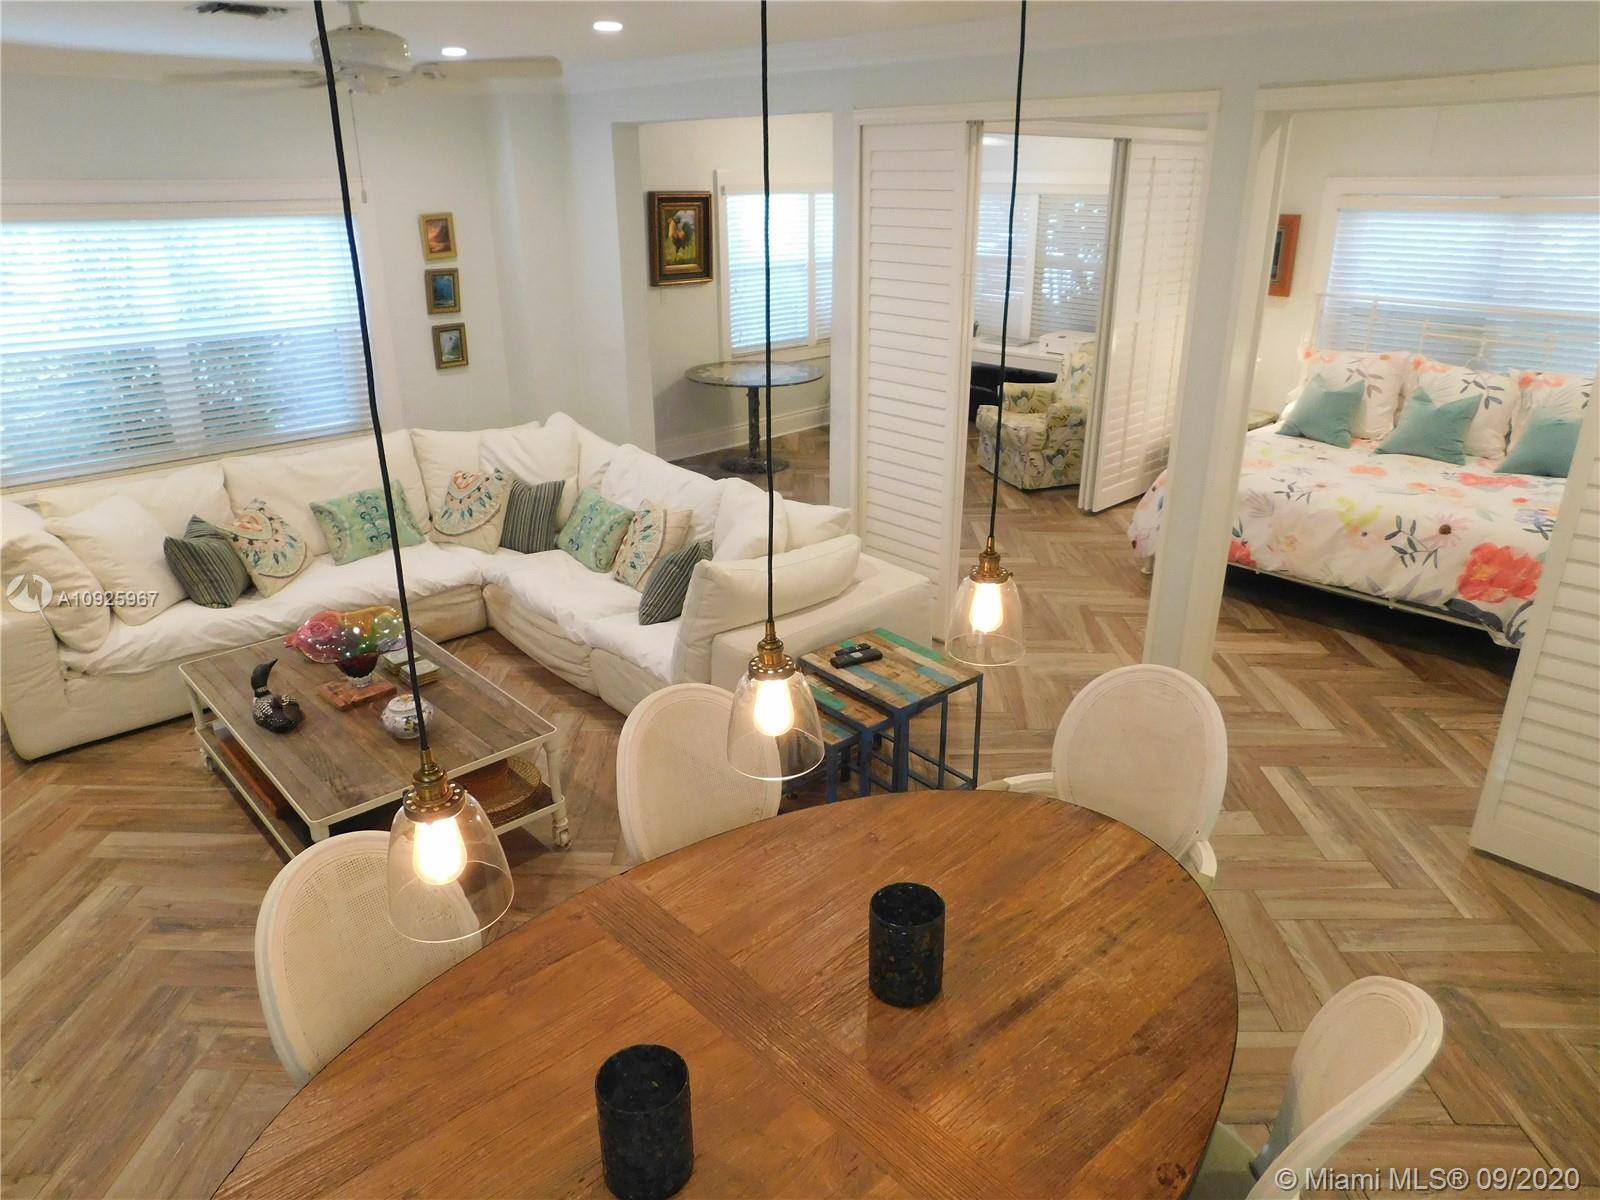 SOPHISTICATED AND FULLY REMODELED BEACH HOME WITH A COTTAGE LOCATED JUST A FEW STEPS FROM THE BEACH